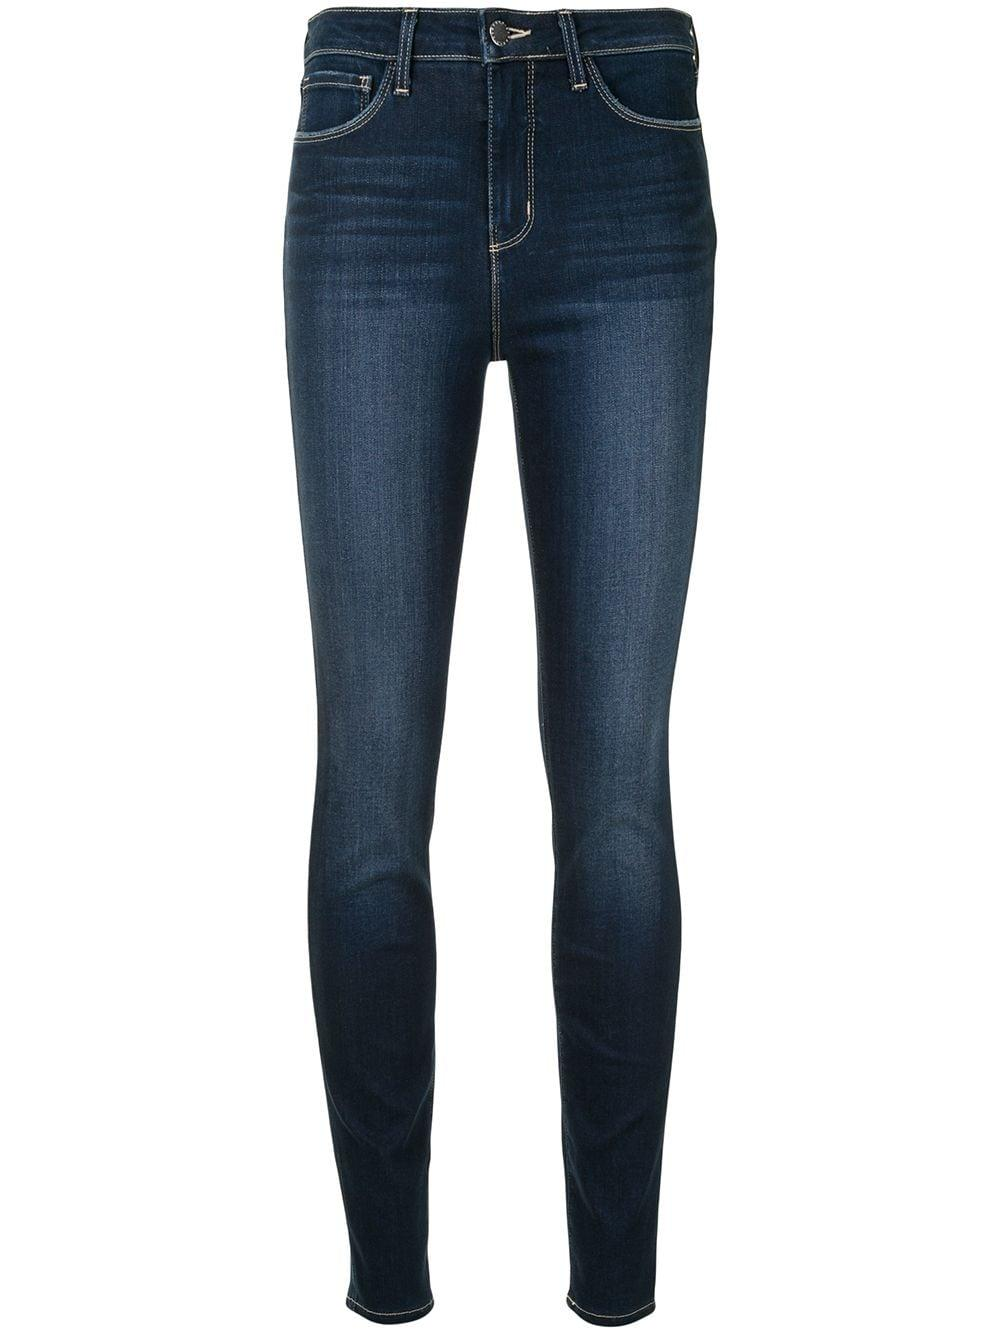 Marguerite skinny jeans